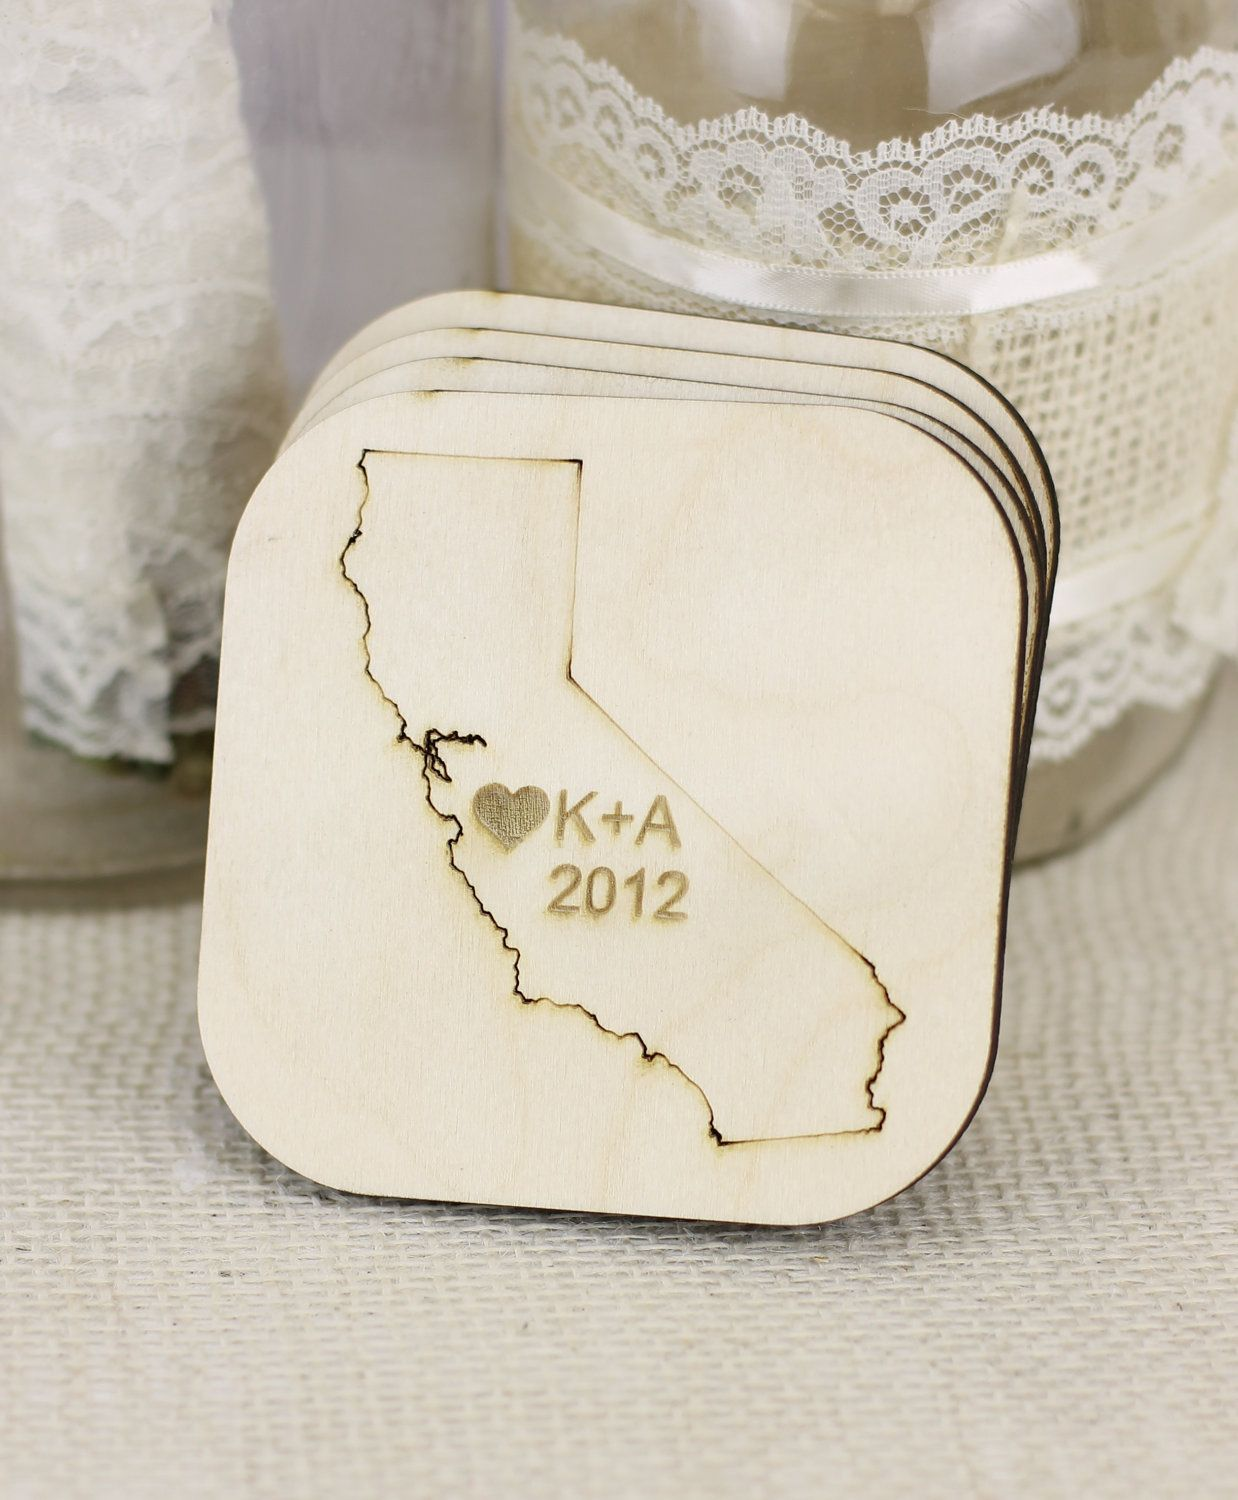 Personalized Rustic Wedding Favors State Coasters | Event Ideas ...